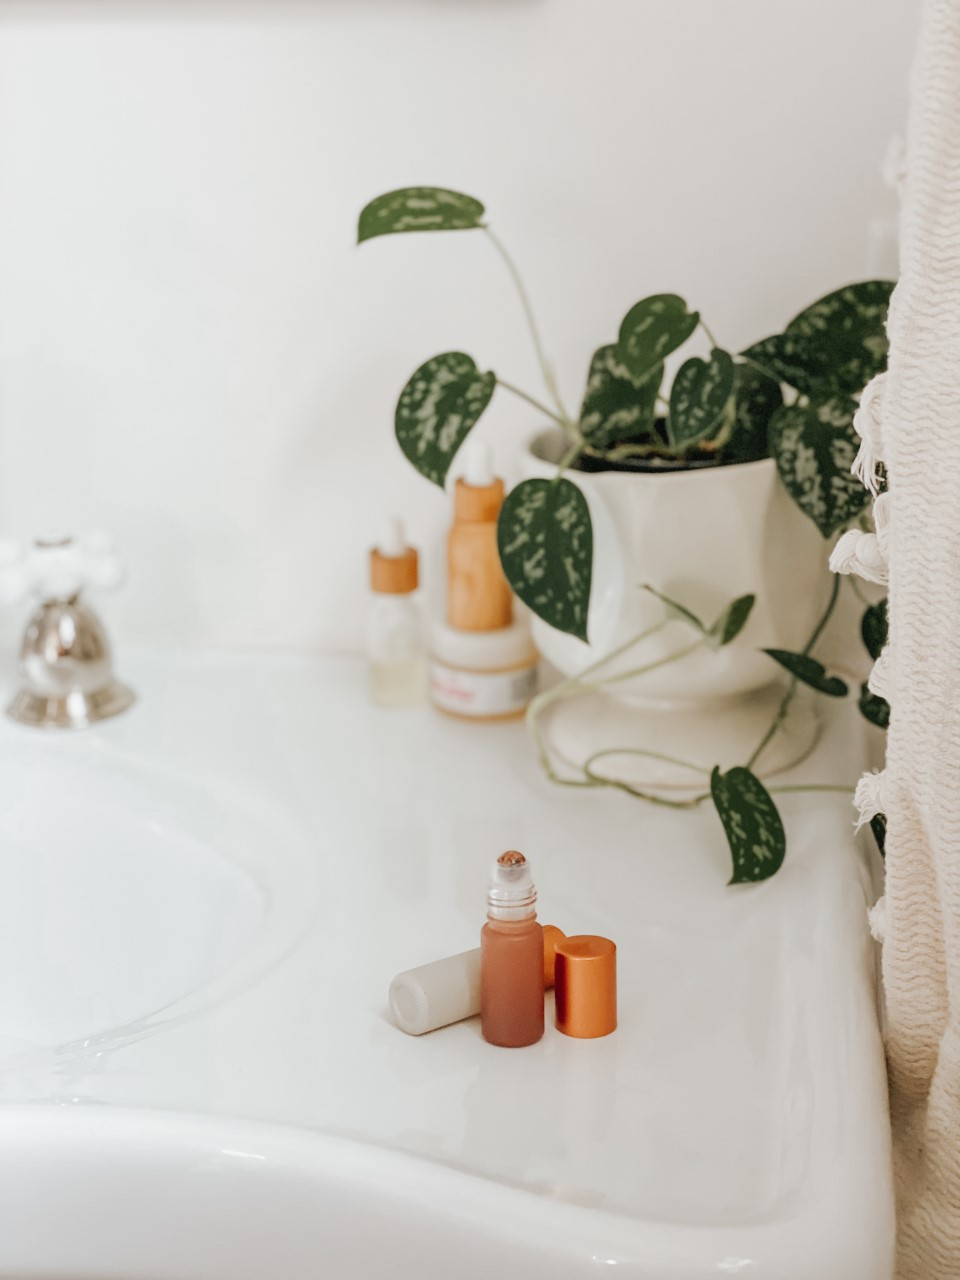 dunes collection roller bottle on white farmhouse sink Emily Sue Netz for Whimsy and Wellness